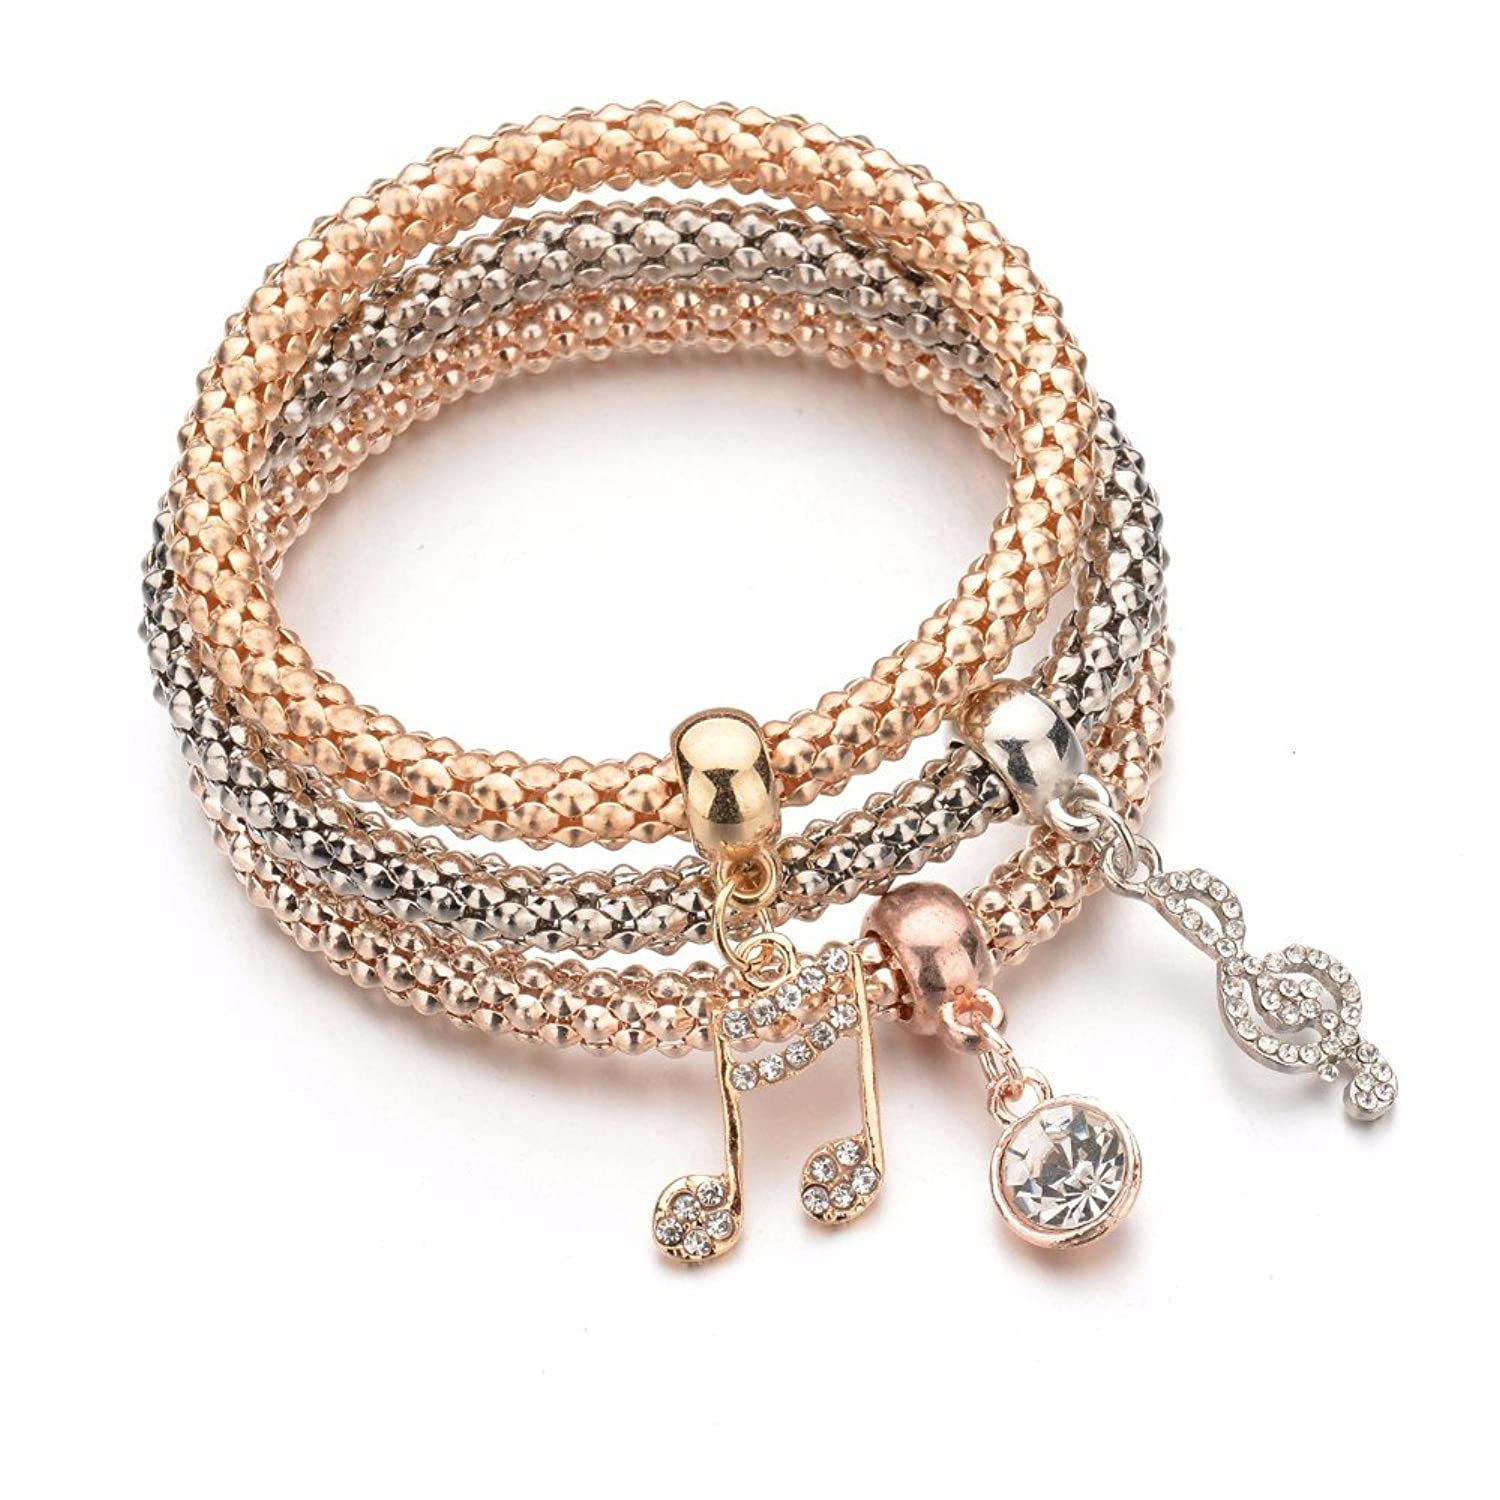 Bracelet: Buy Bracelets online at best prices in India - Amazon.in